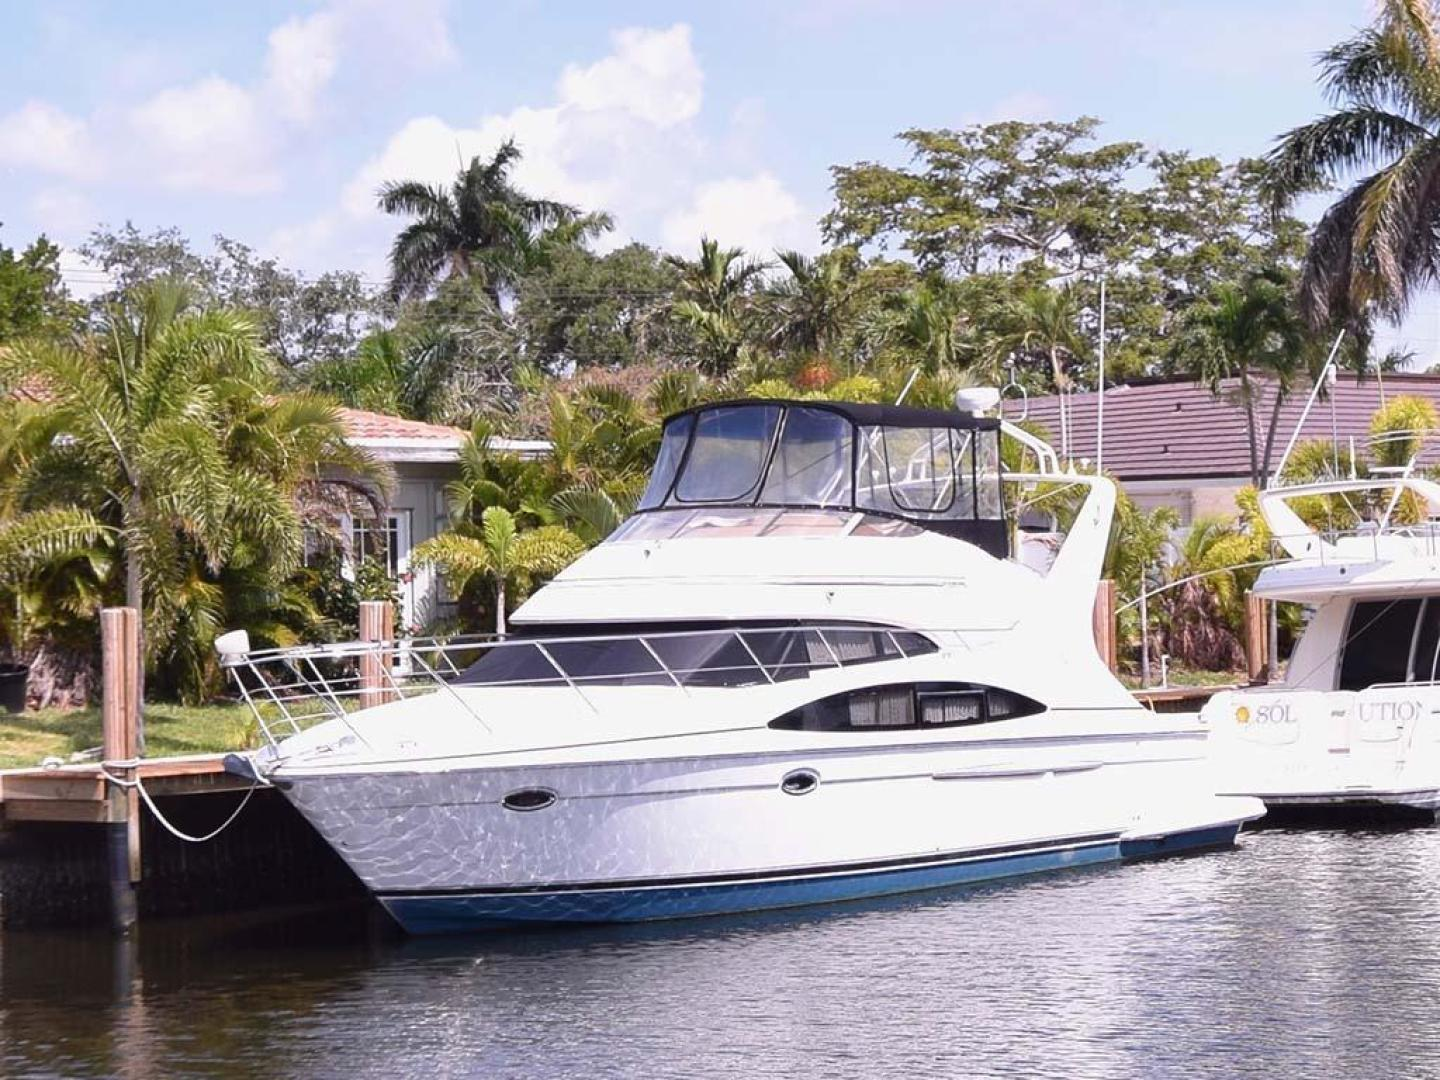 Carver-42 Mariner 2004-Livin Life Fort Lauderdale-Florida-United States-Profile-913210 | Thumbnail